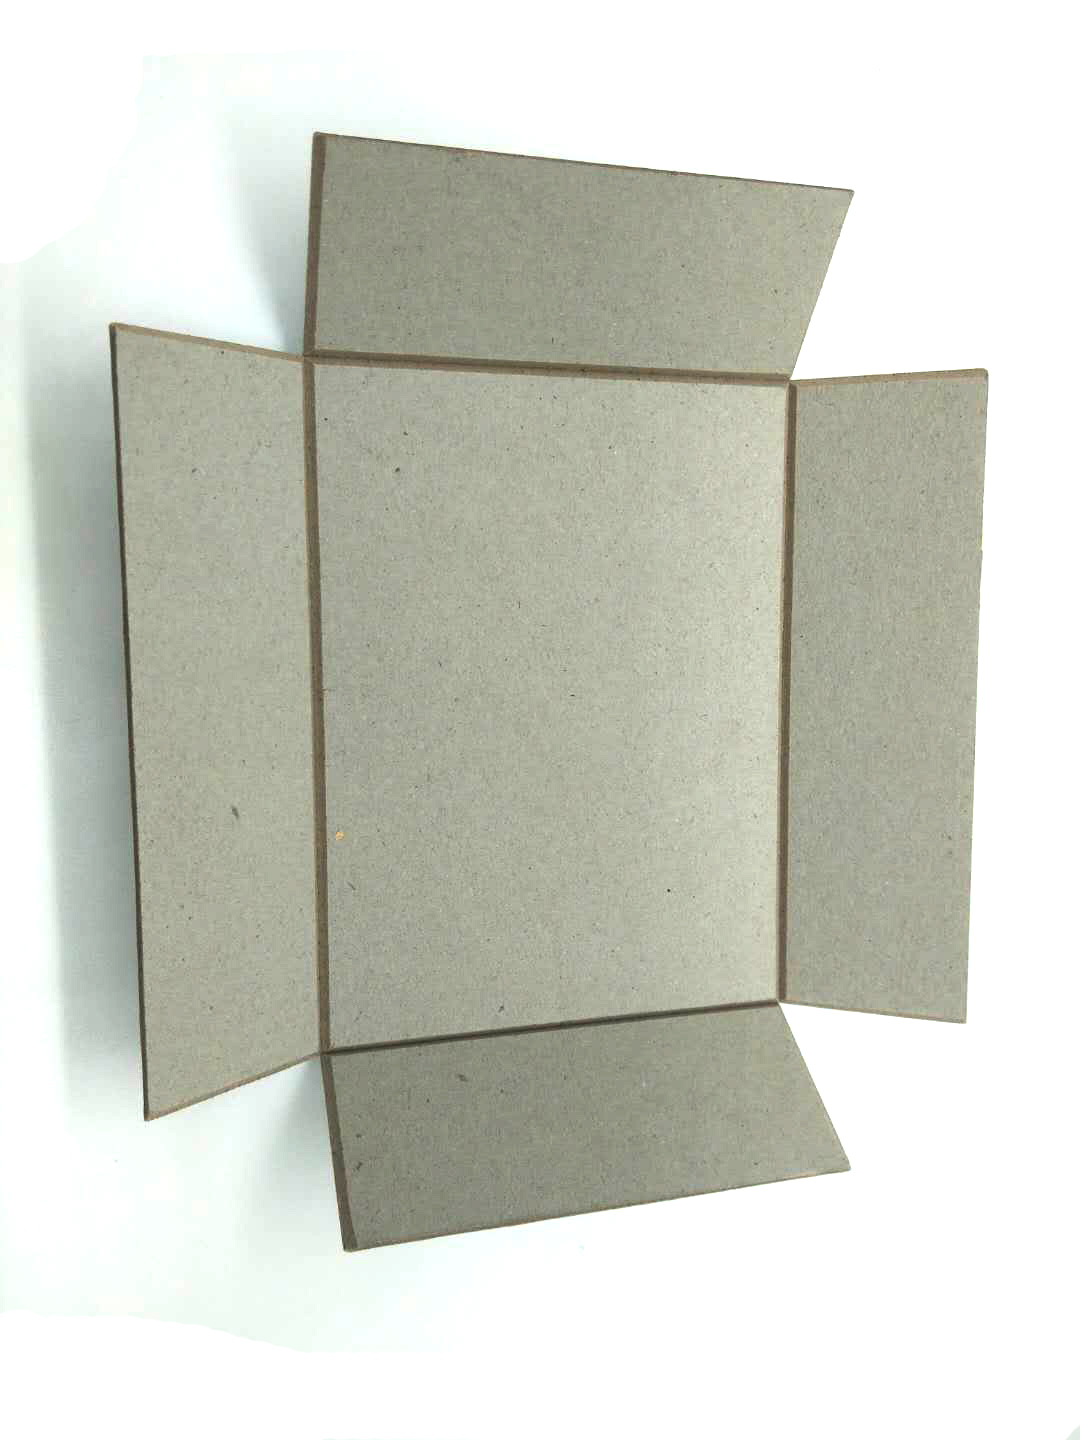 NEW BAMBOO PAPER Array image136